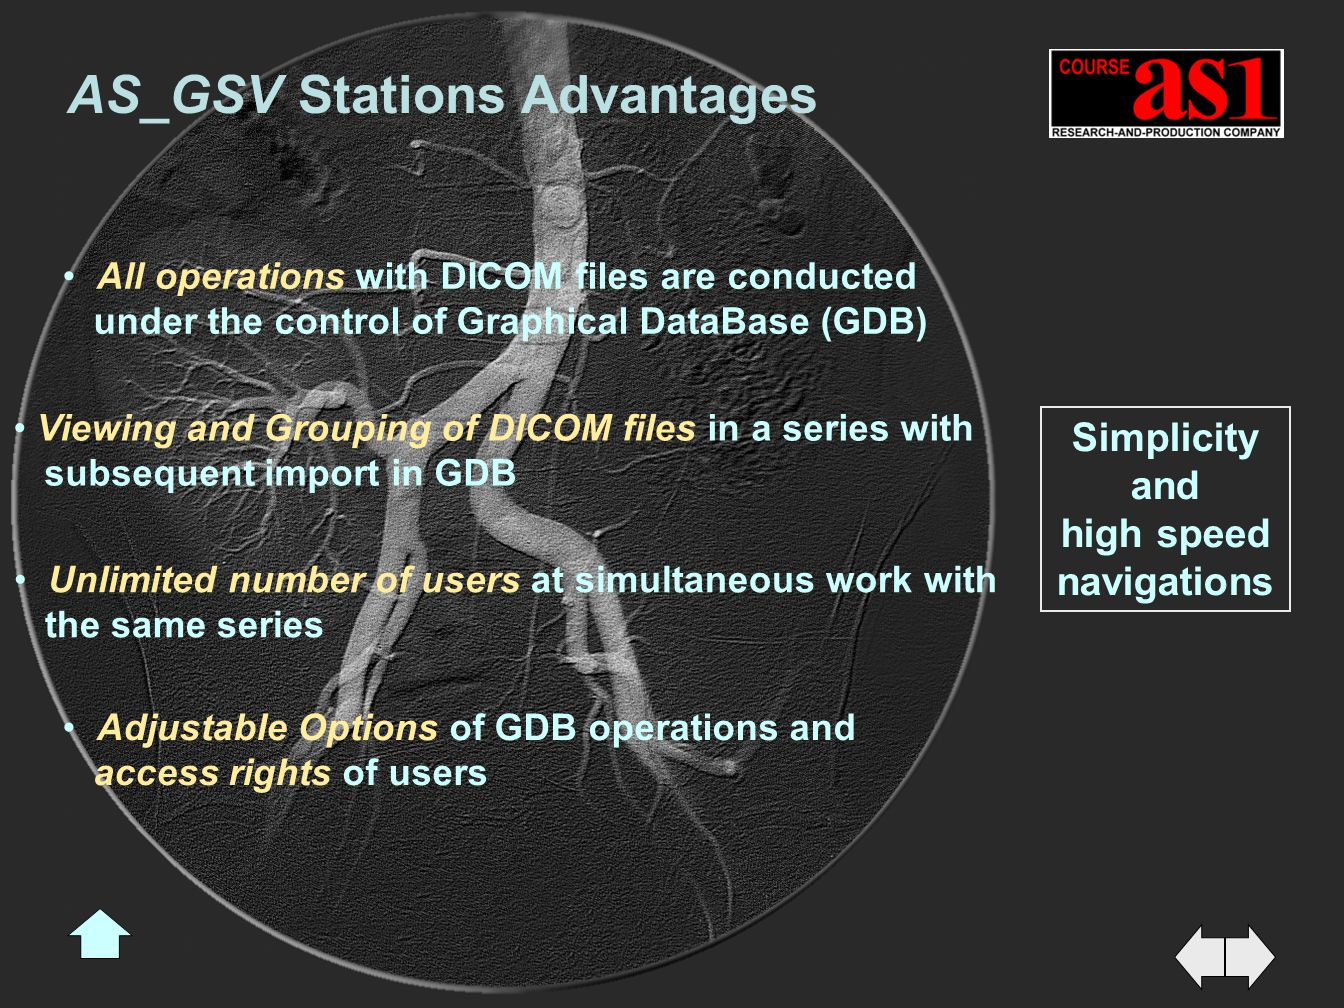 Simplicity and high speed navigations Viewing and Grouping of DICOM files in a series with subsequent import in GDB All operations with DICOM files are conducted under the control of Graphical DataBase (GDB) Adjustable Options of GDB operations and access rights of users Unlimited number of users at simultaneous work with the same series AS_GSV Stations Advantages